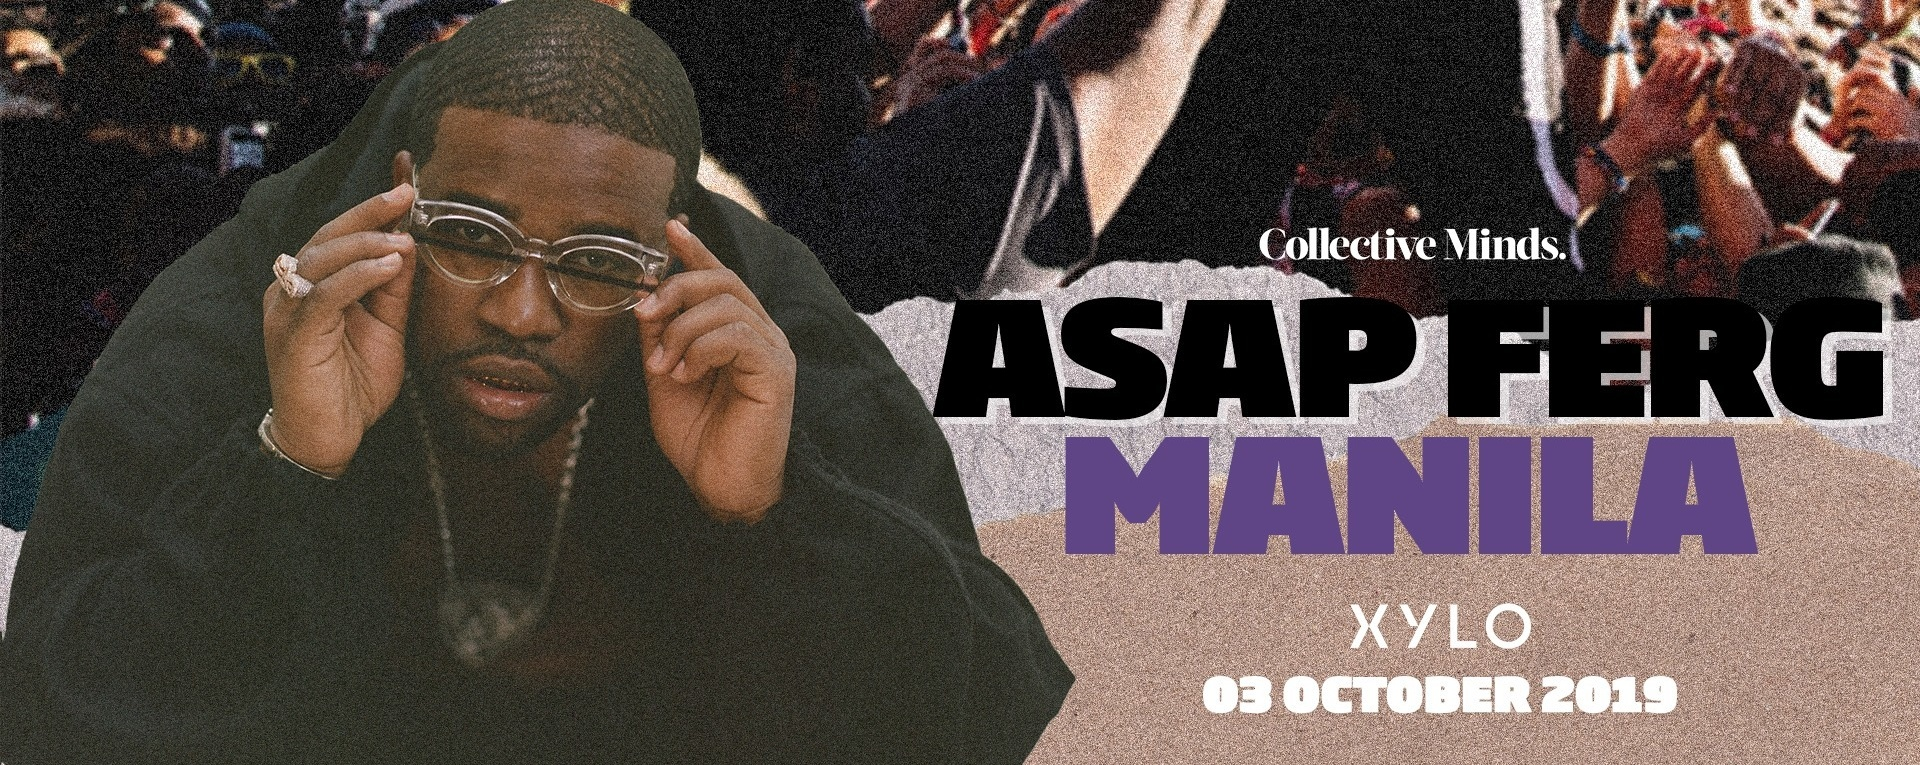 A$AP Ferg Manila presented by Collective Minds x CC:Concepts